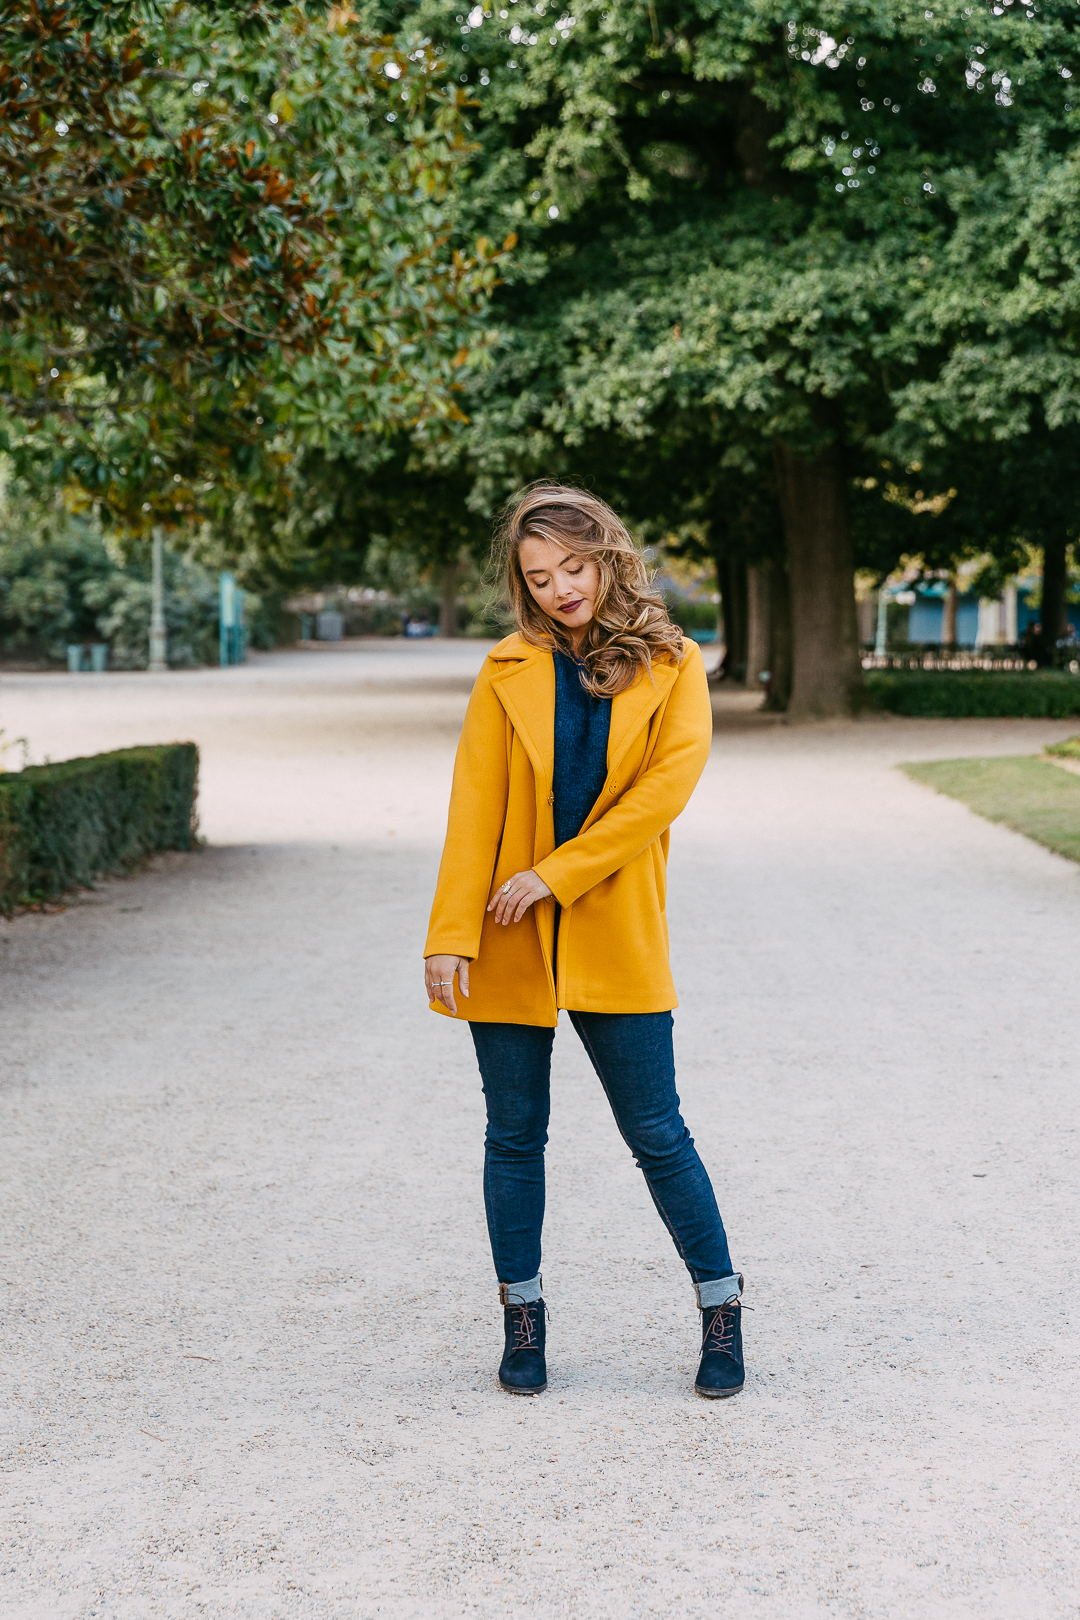 Look-64-yellow-is-fashion-manteau-bottine-pull-jean-automne-hiver-2018-la-fee-louise-1